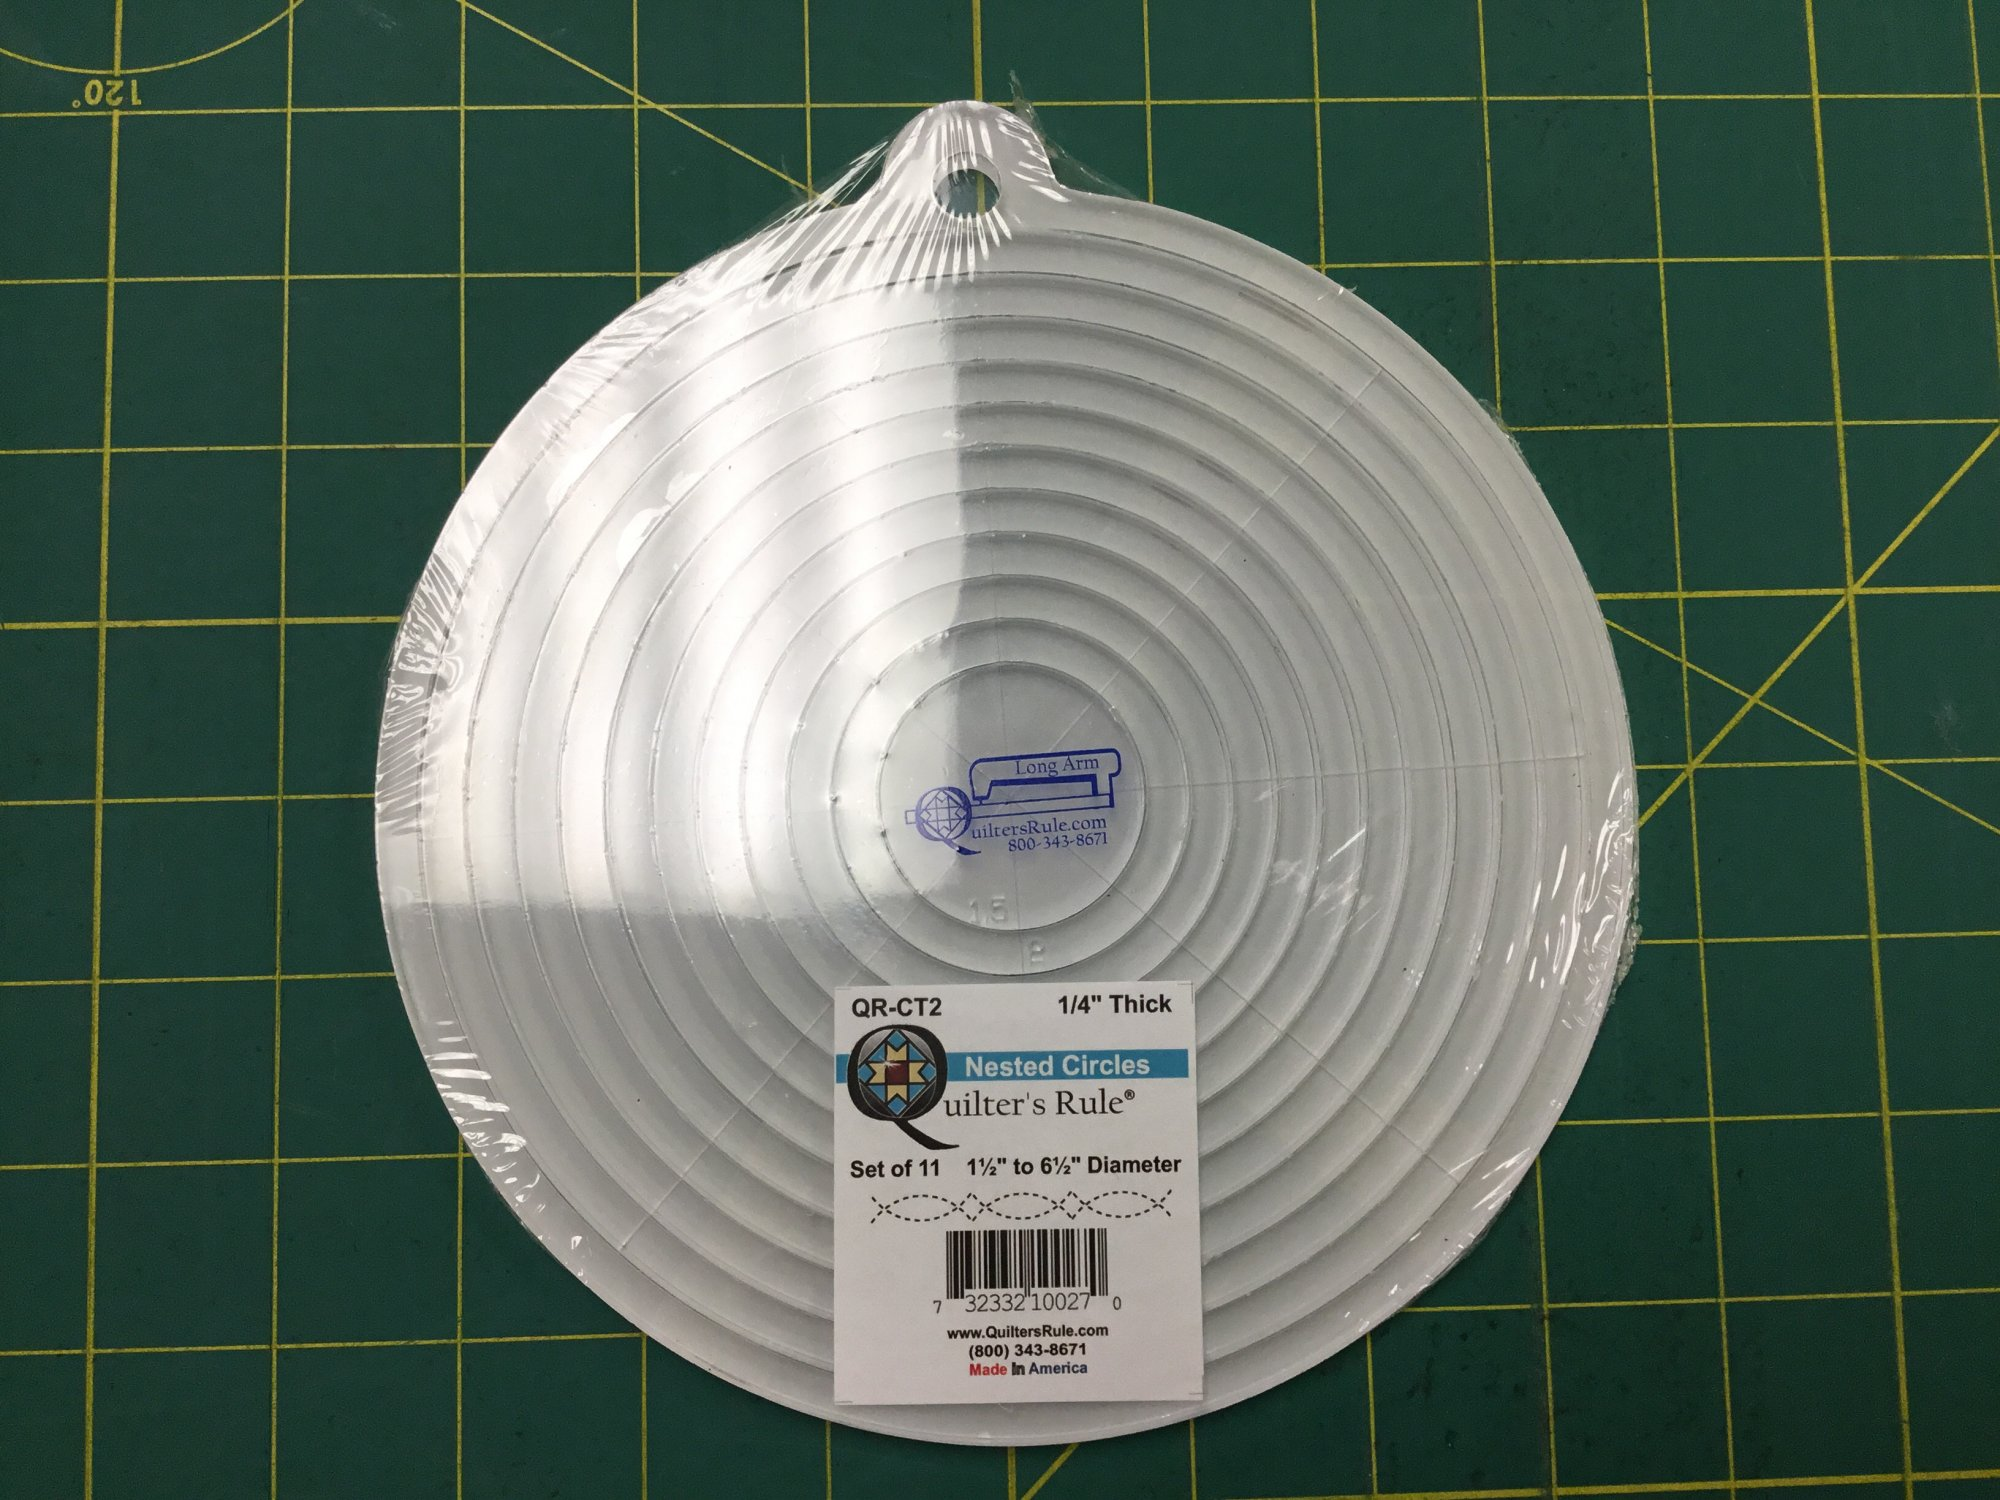 NESTED CIRCLES RULERS QRCT2 1/4 thick